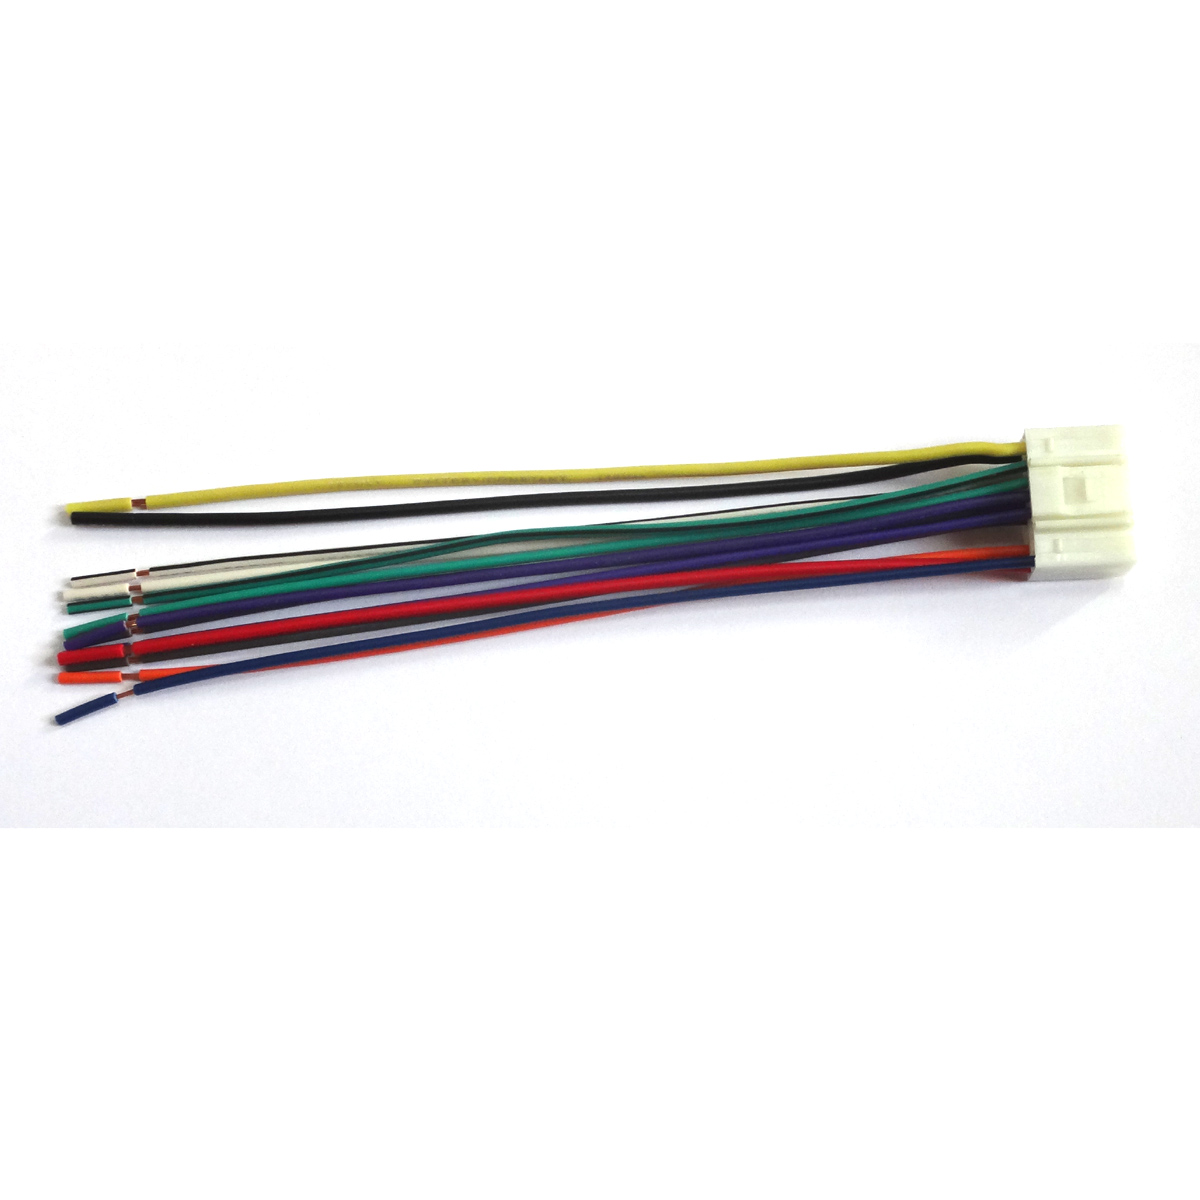 hight resolution of details about alpine 16 pin car stereo radio wiring wire harness lead tao